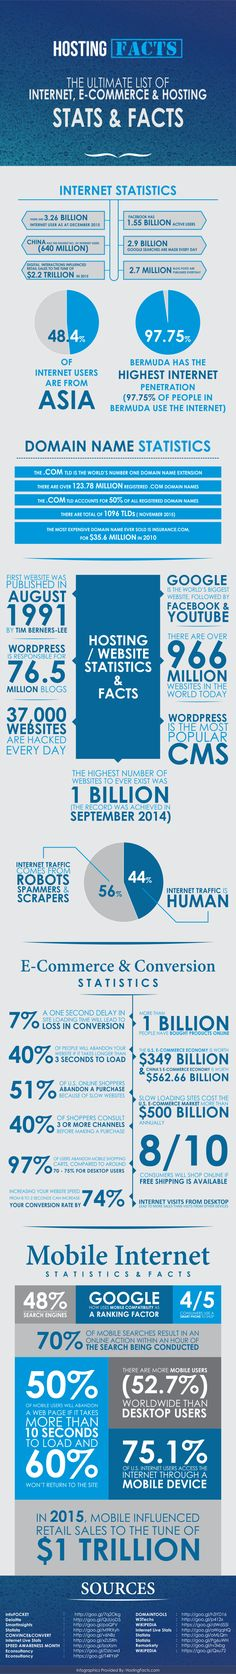 The Ultimate List of Internet, E-commerce & Hosting Stats & Facts (Infographic)